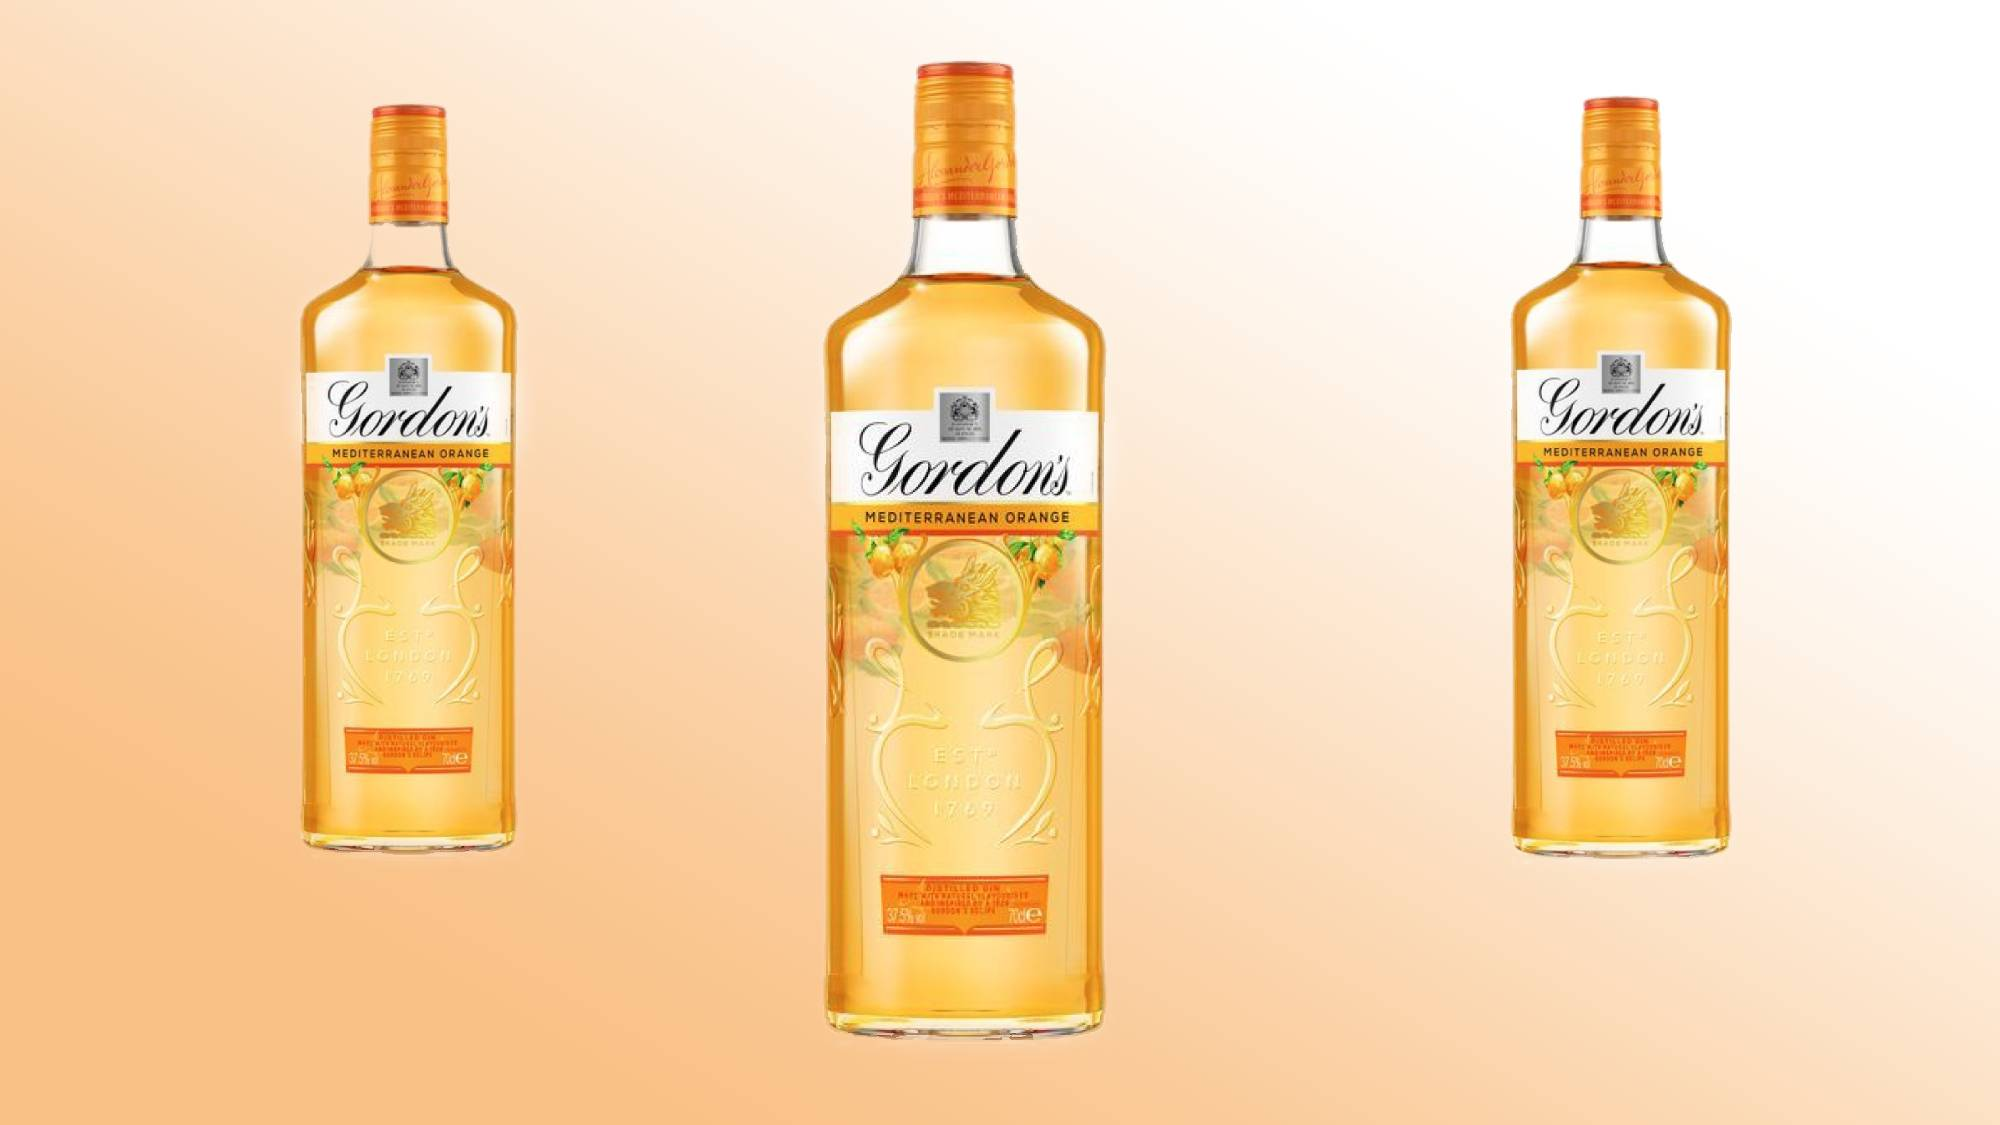 Gordon's Gin Launches A Limited Edition Mediterranean Orange Flavour And It Sounds Delicious photo